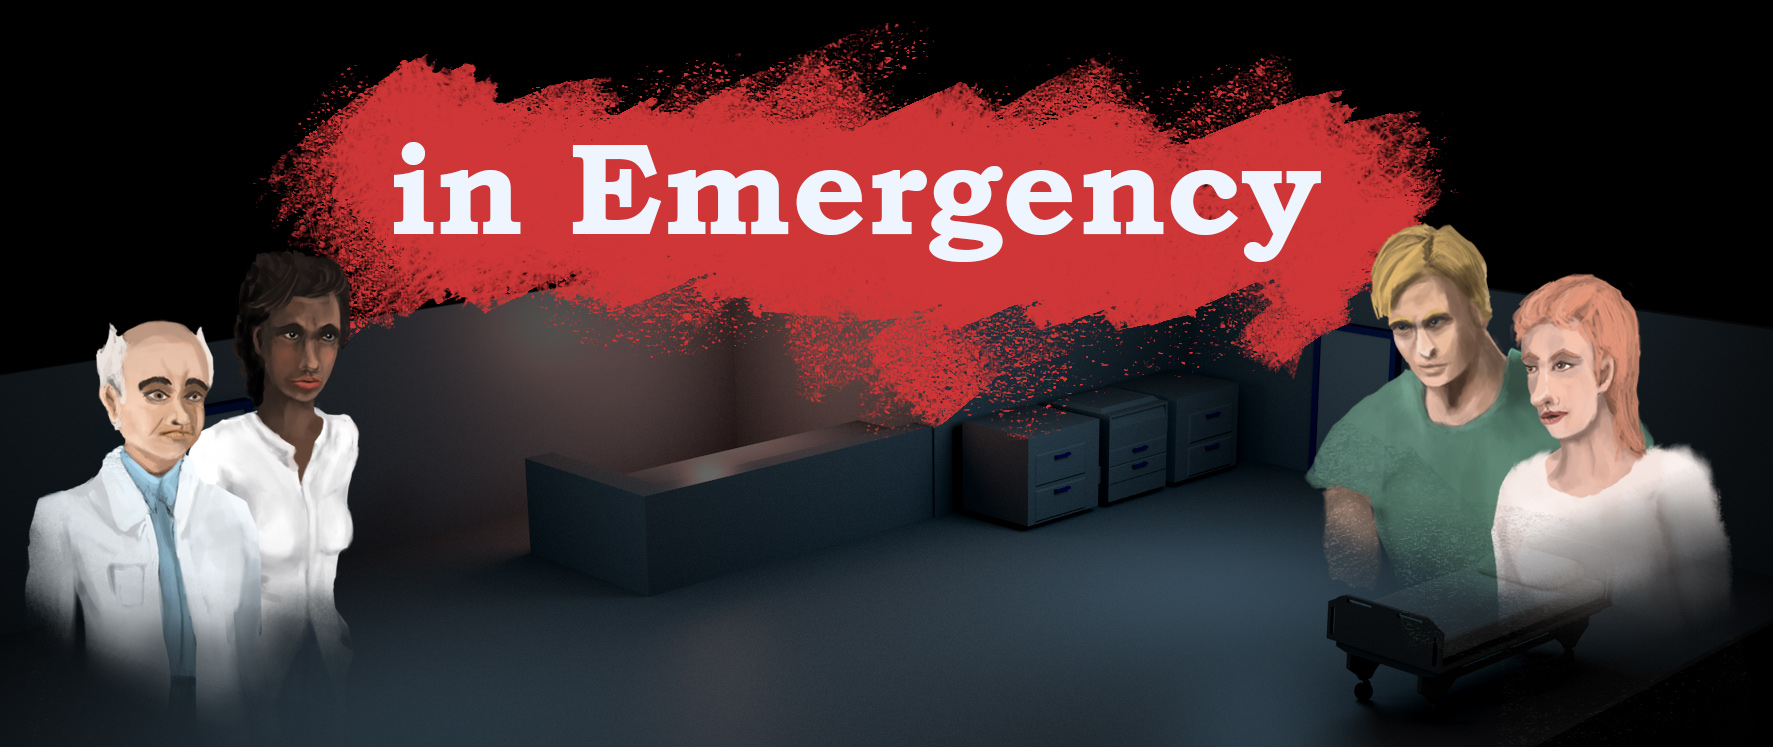 in Emergency